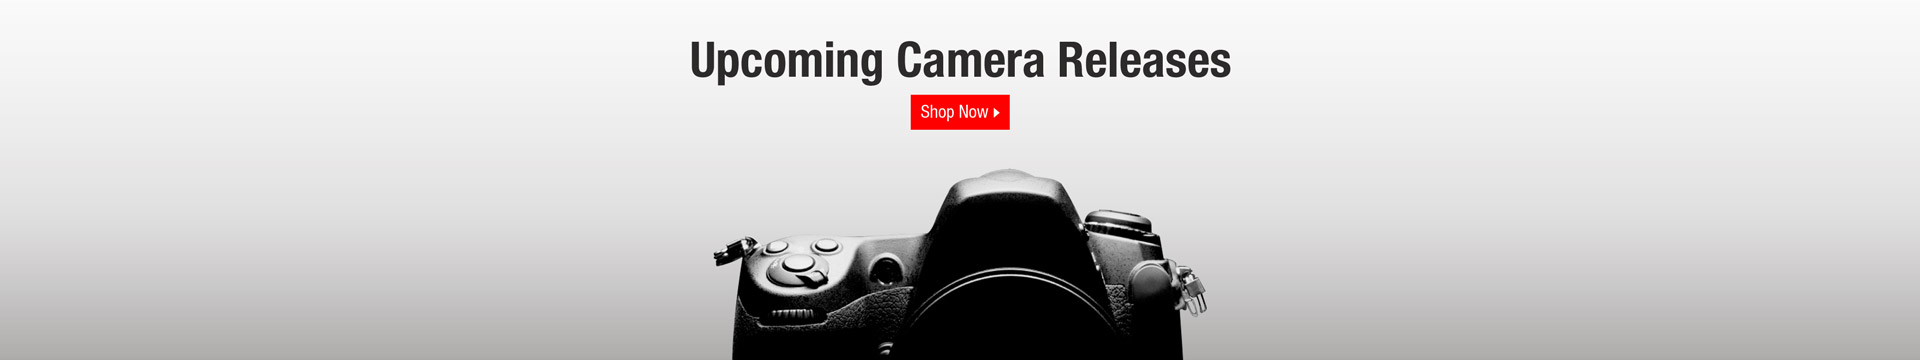 Digital Cameras And Accessories Neweggcom - Free invoice template for mac online camera stores